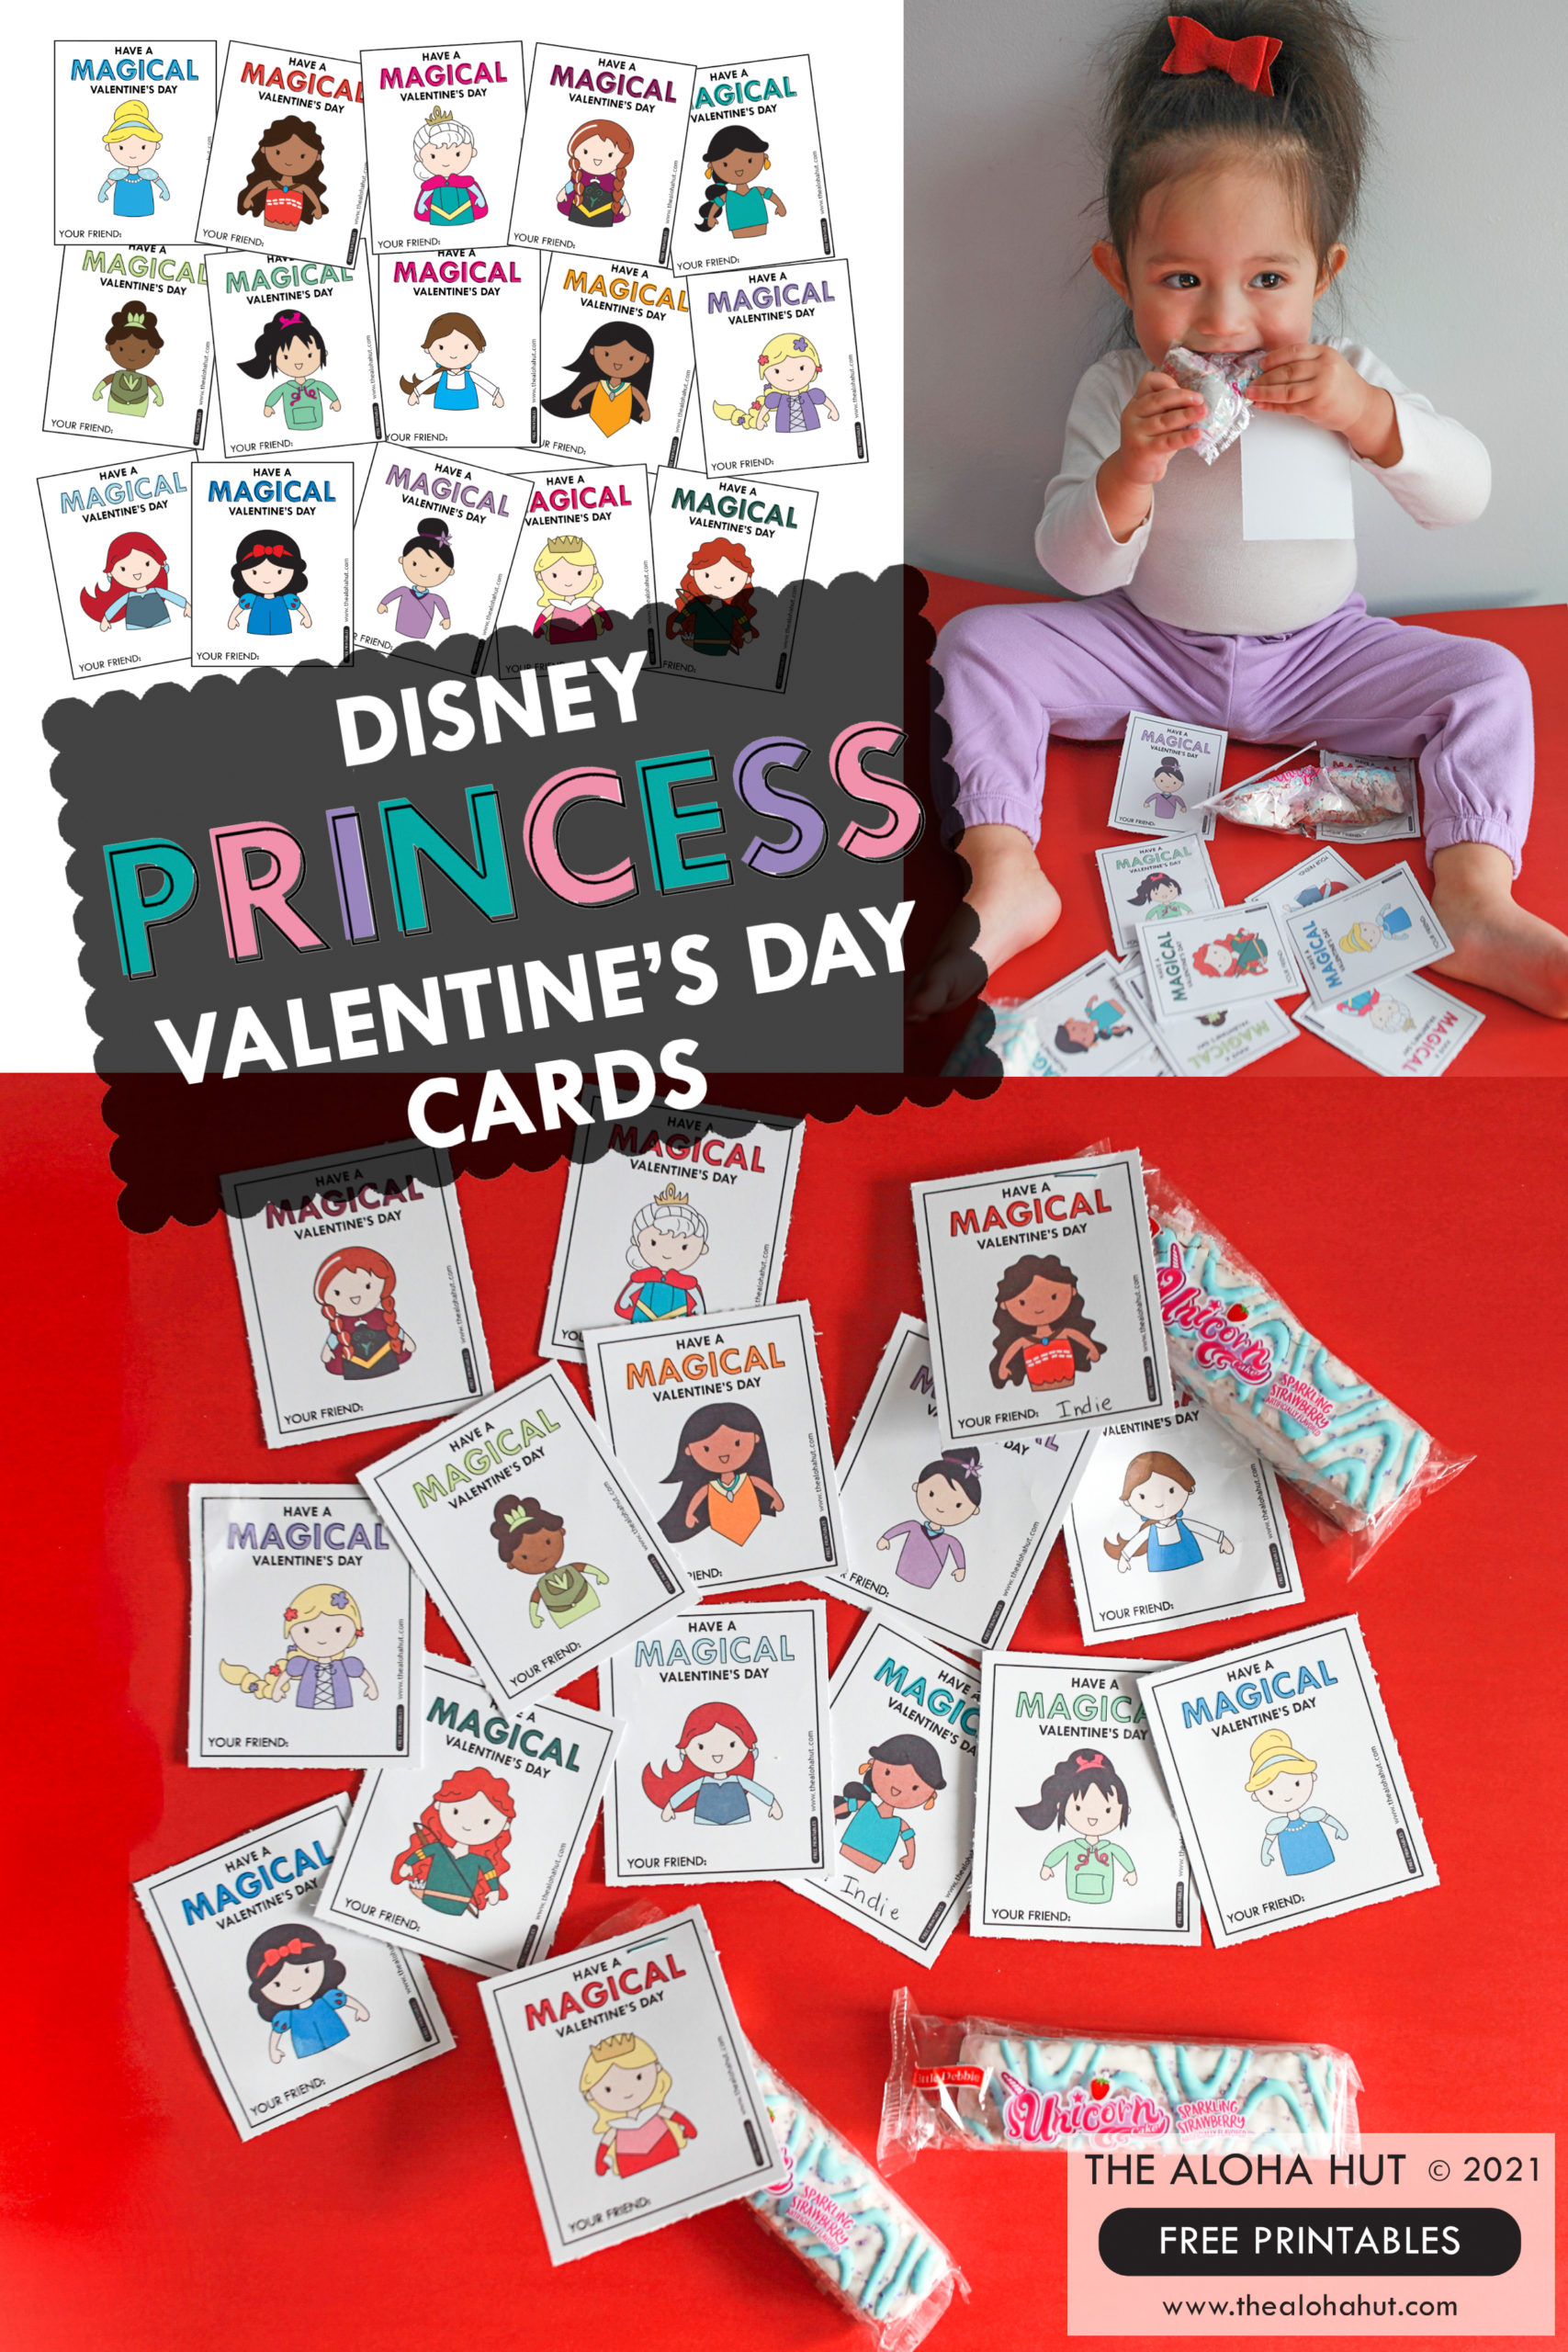 Magical Disney Princess Valentine's Day Cards - Free Printables by the Aloha Hut